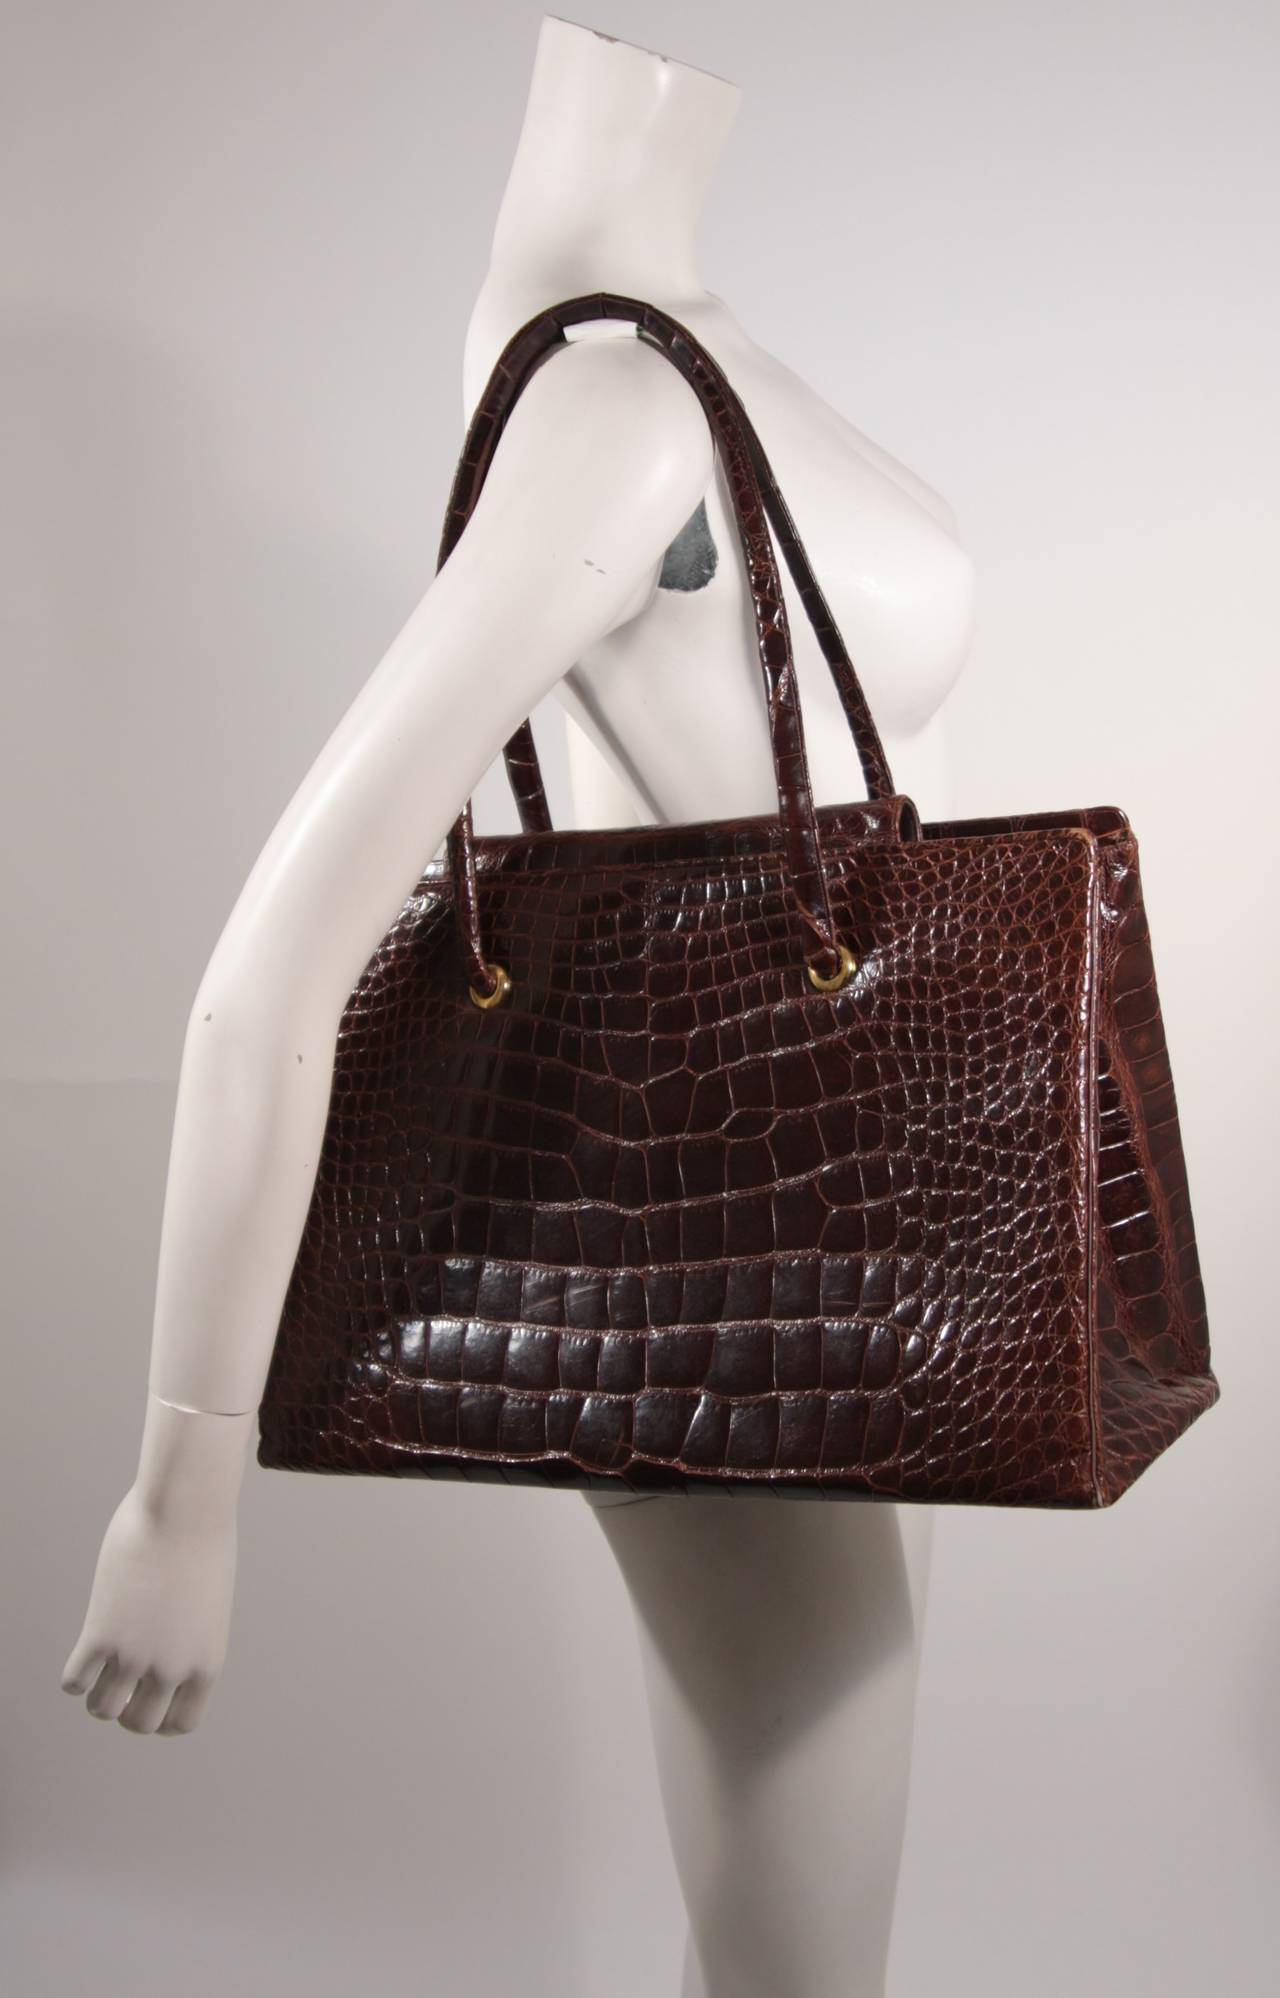 Judith Leiber Extra Large Chocolate Crocodile Shoulder Bag with Snap Top 4